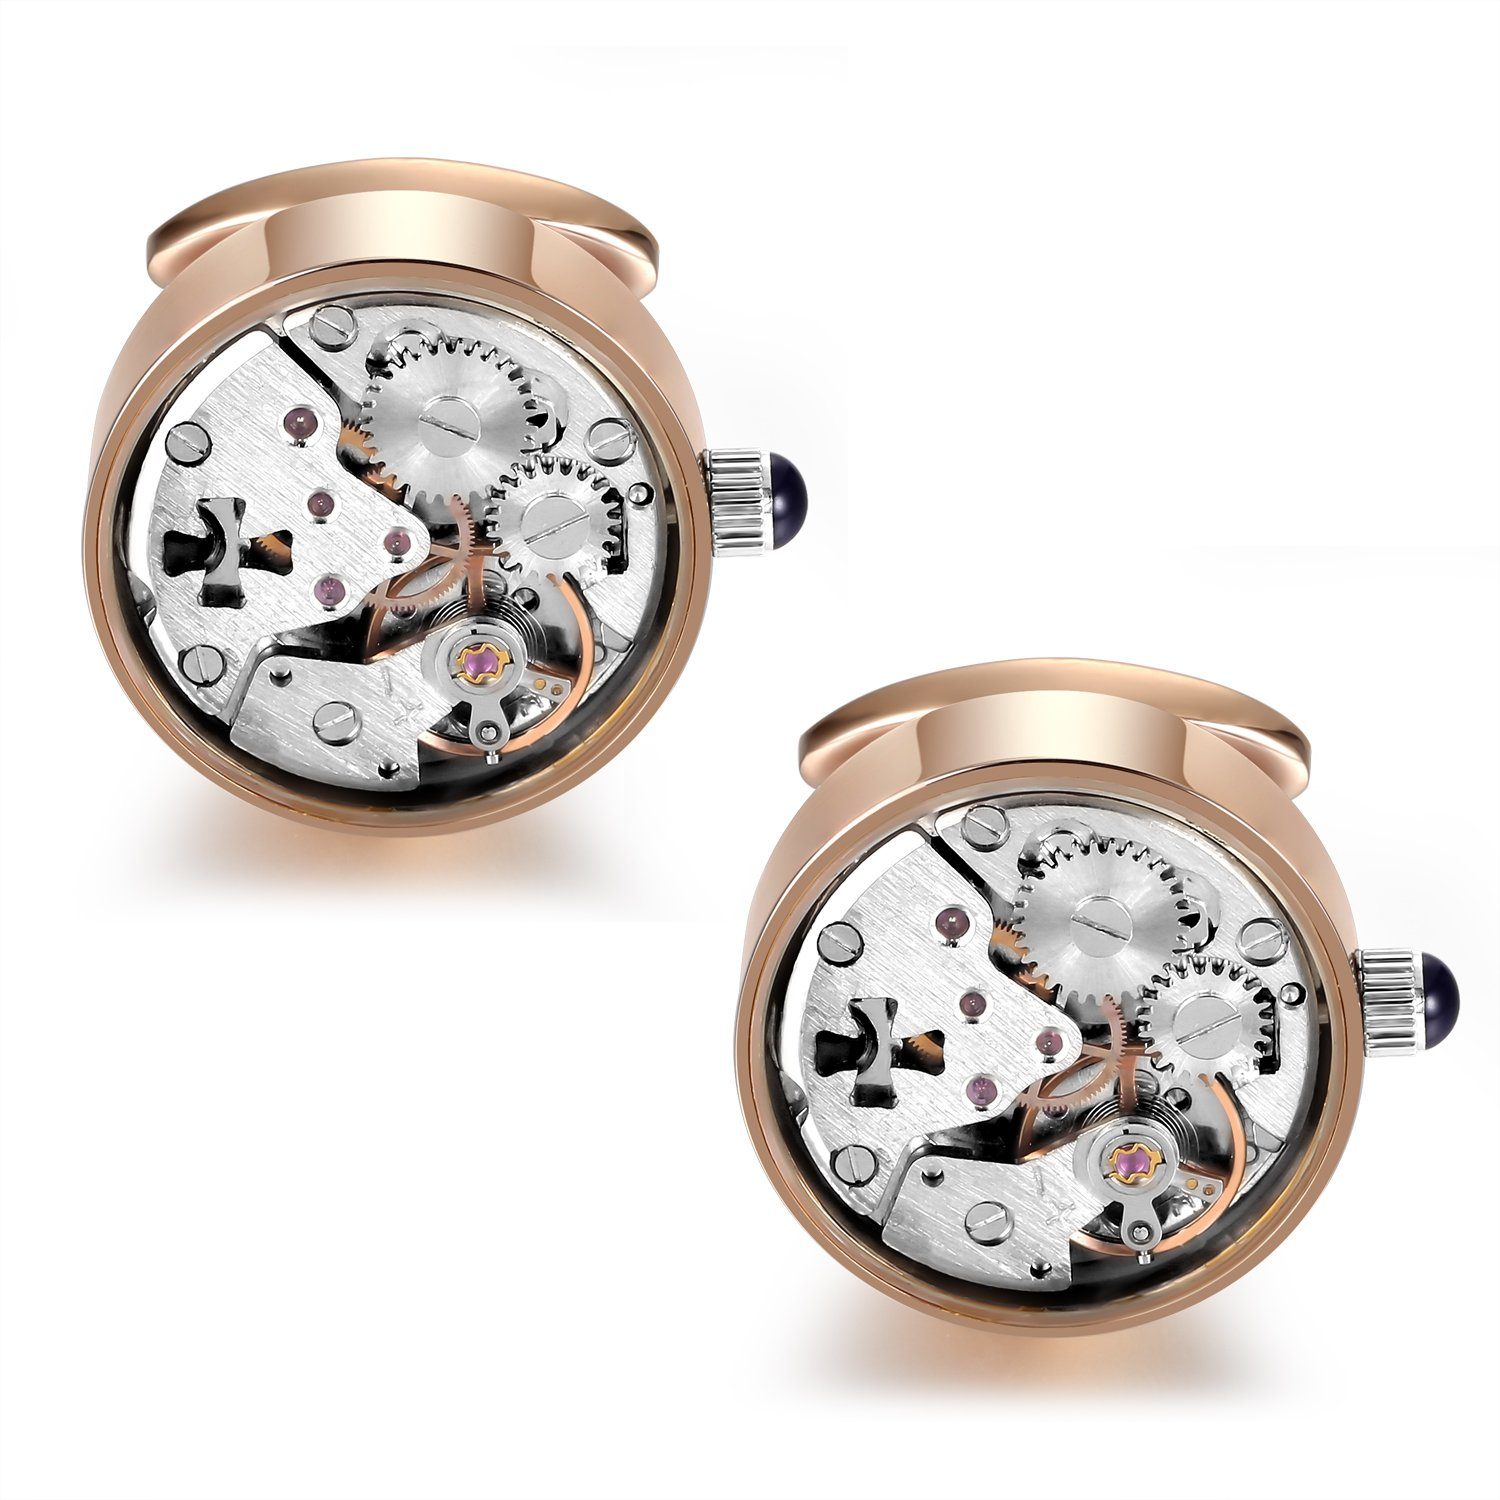 Dich Creat Rose Gold PVD Stainless Steel Hollow Out Cross Working Movement Cufflinks Covered With Glass by Dich Creat